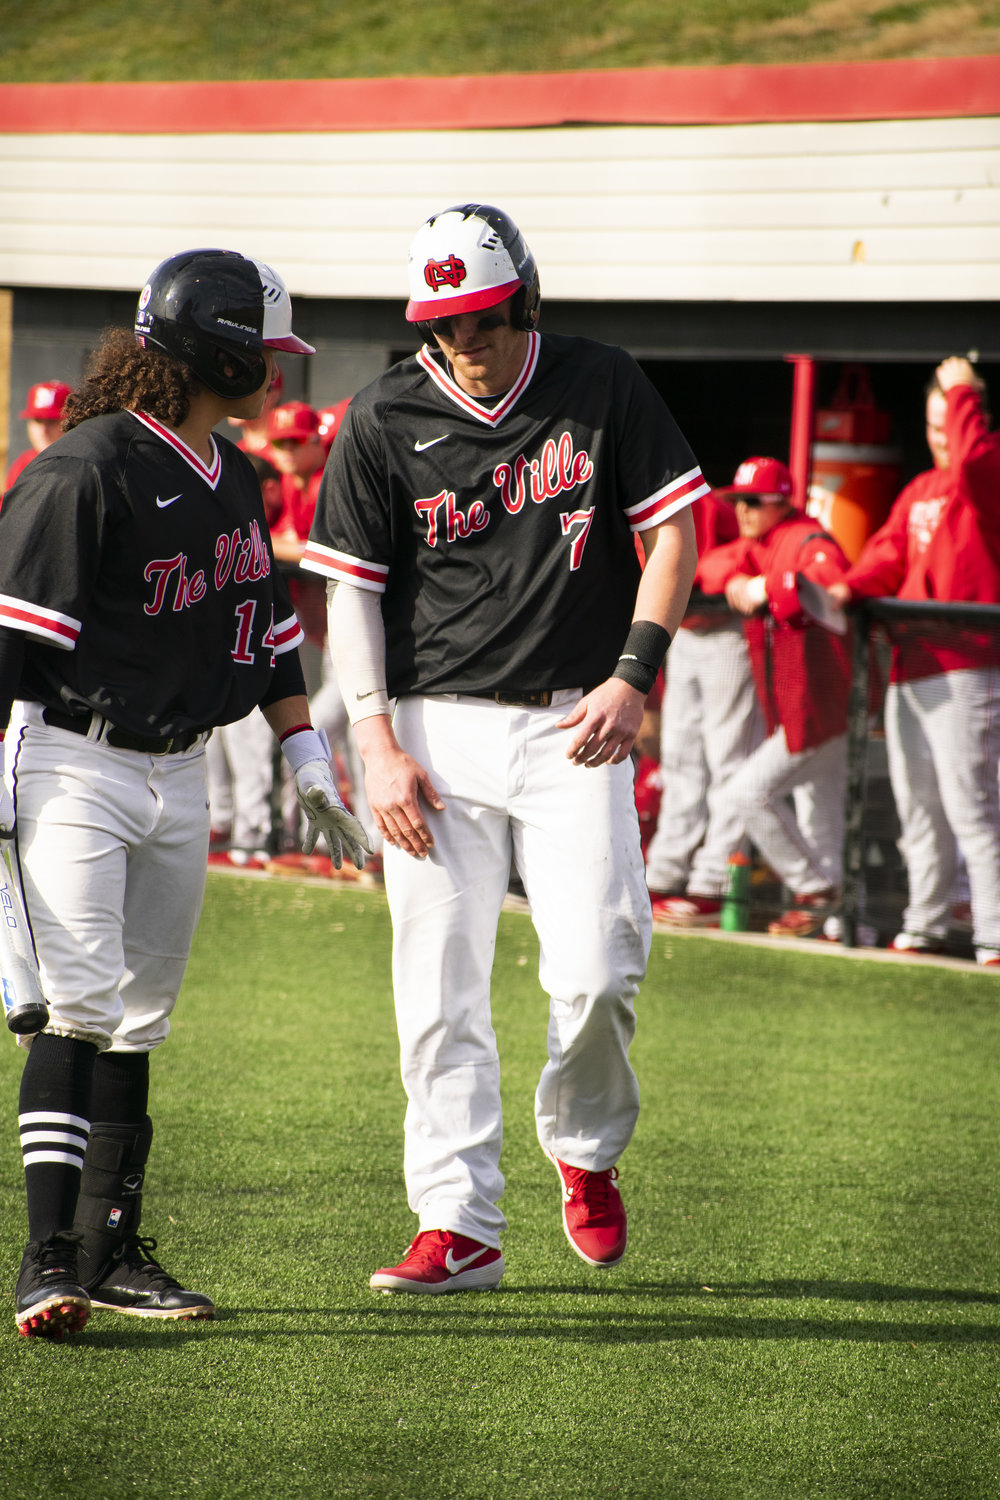 Sophomore Elvin Rosa (14) congratulates Junior Michael Neustifter (7) for just finishing running the bases, scoring points for the team.